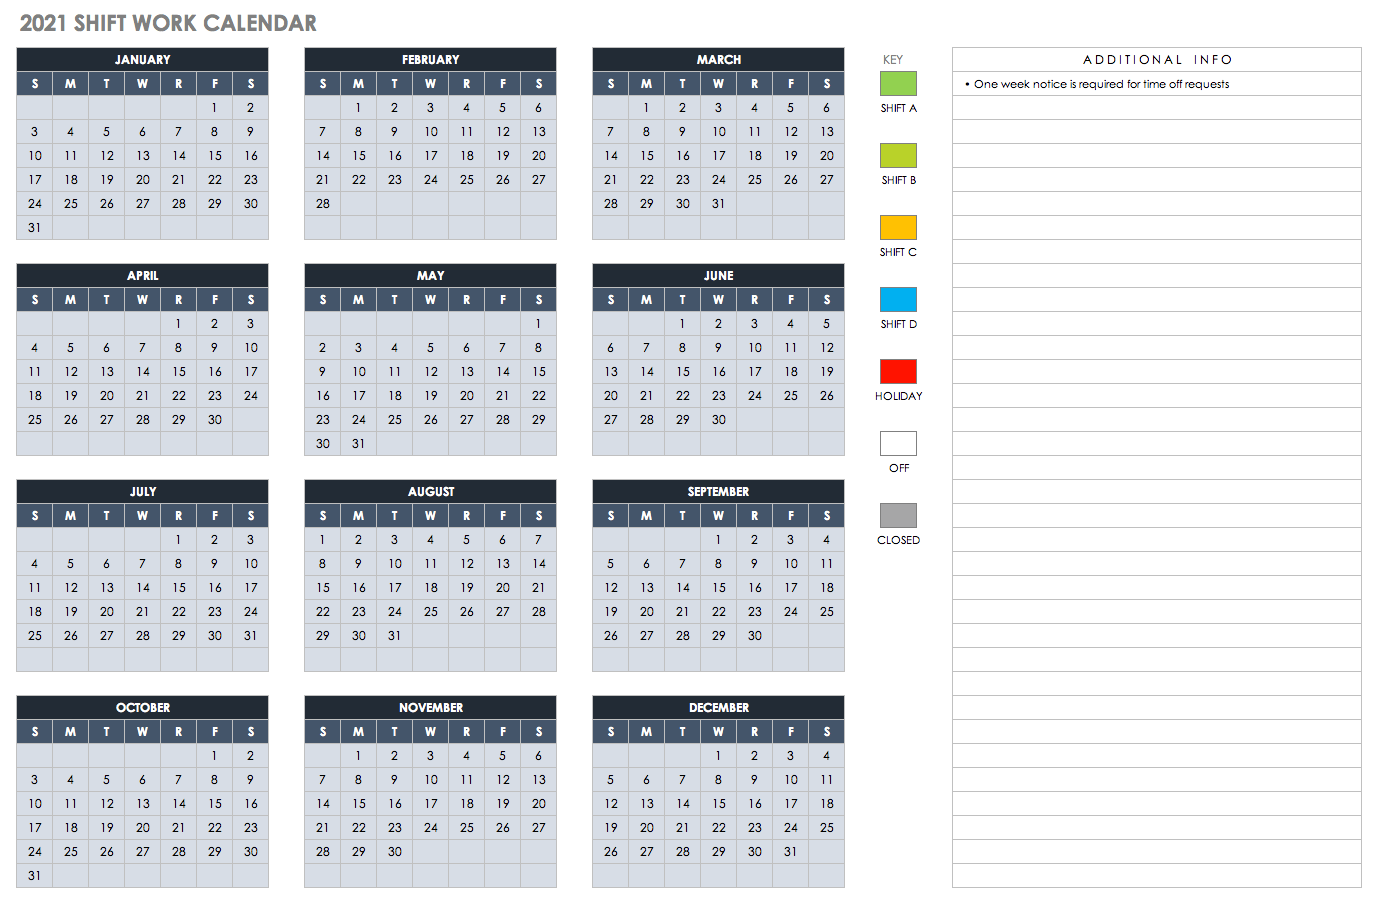 2021 Monthly Shift Work Calendar